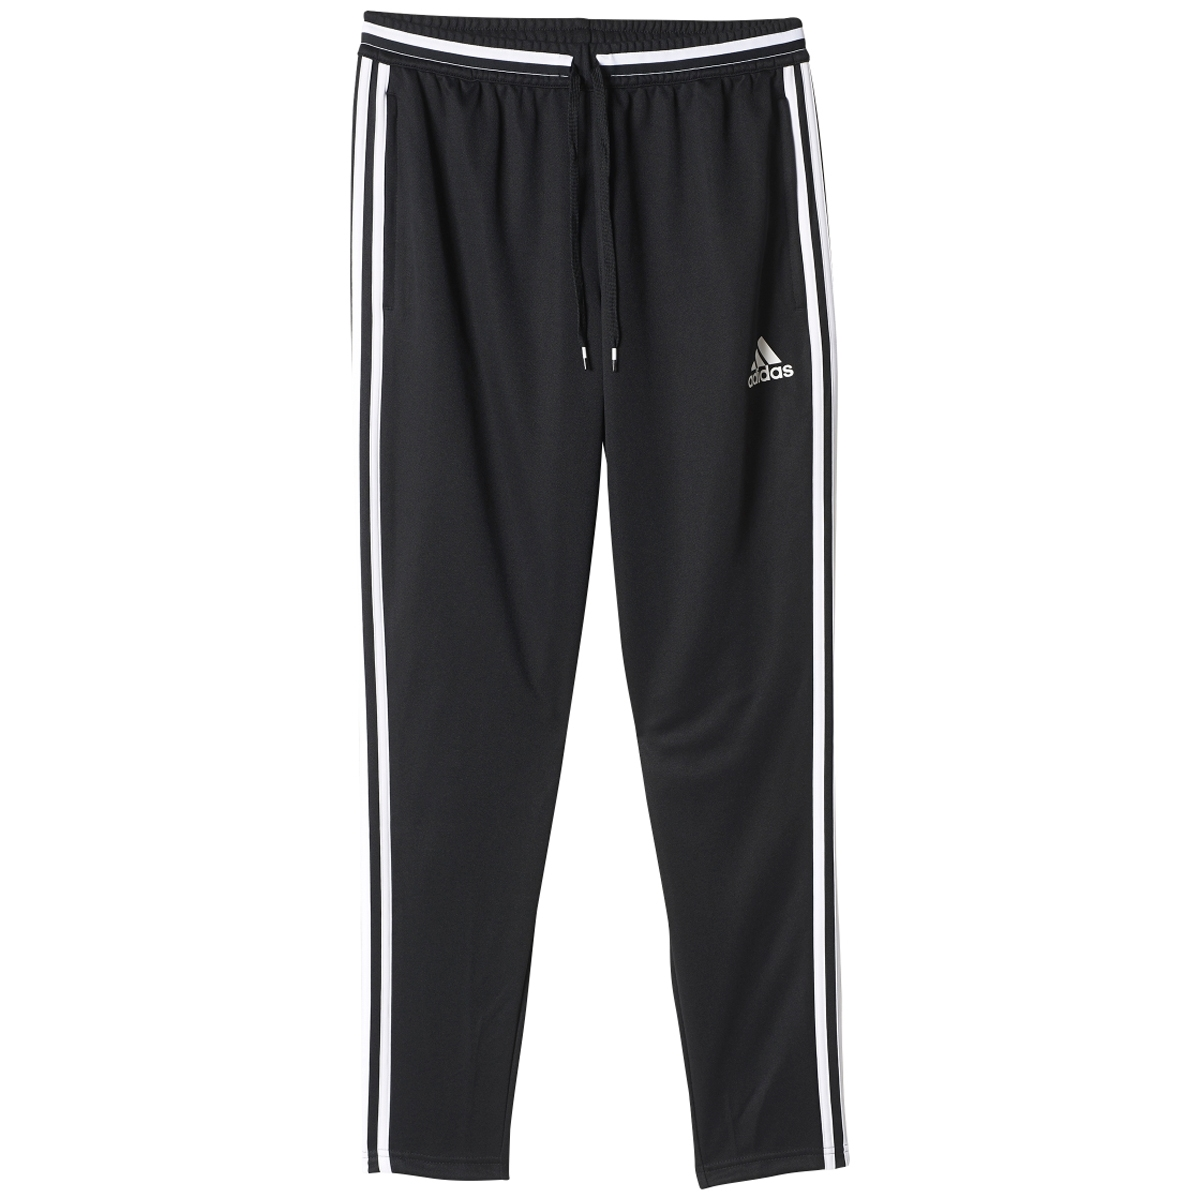 4cad07074 Adidas Condivo 16 Training Pants (Black/White) | AX6087 ...